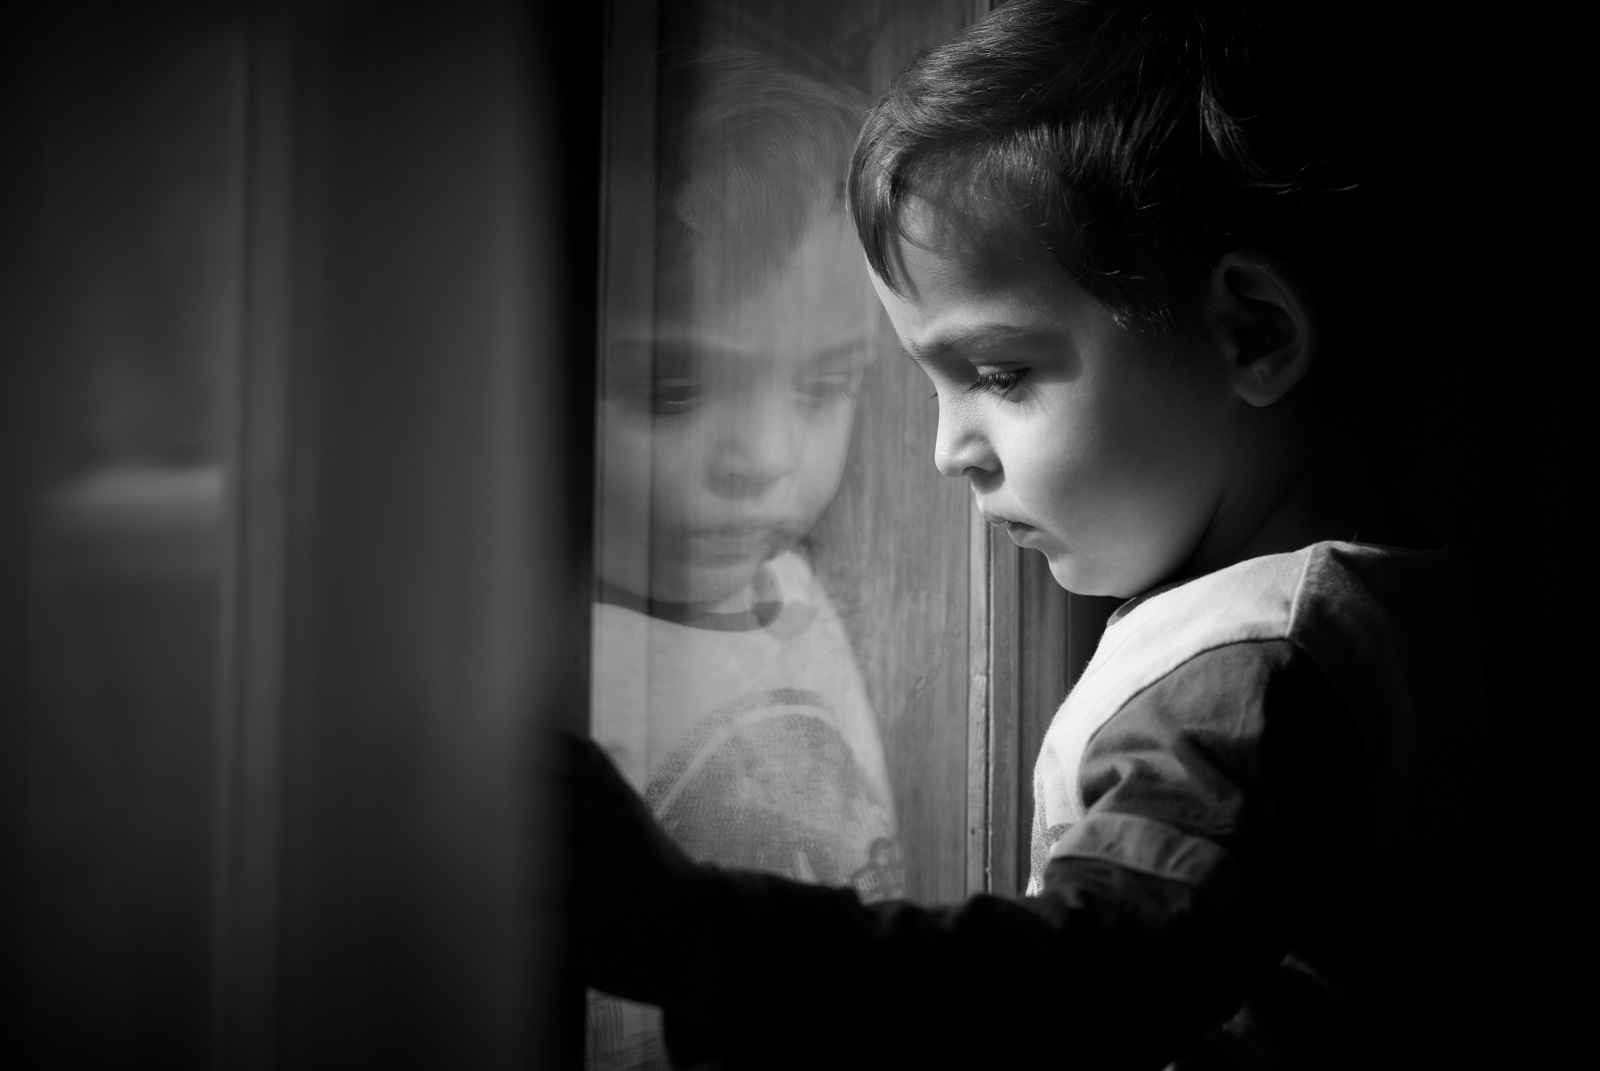 child-kid-baby-toddler-boy-girl-reflection-sad-depressed-dim-window-looking-watching-waiting-1